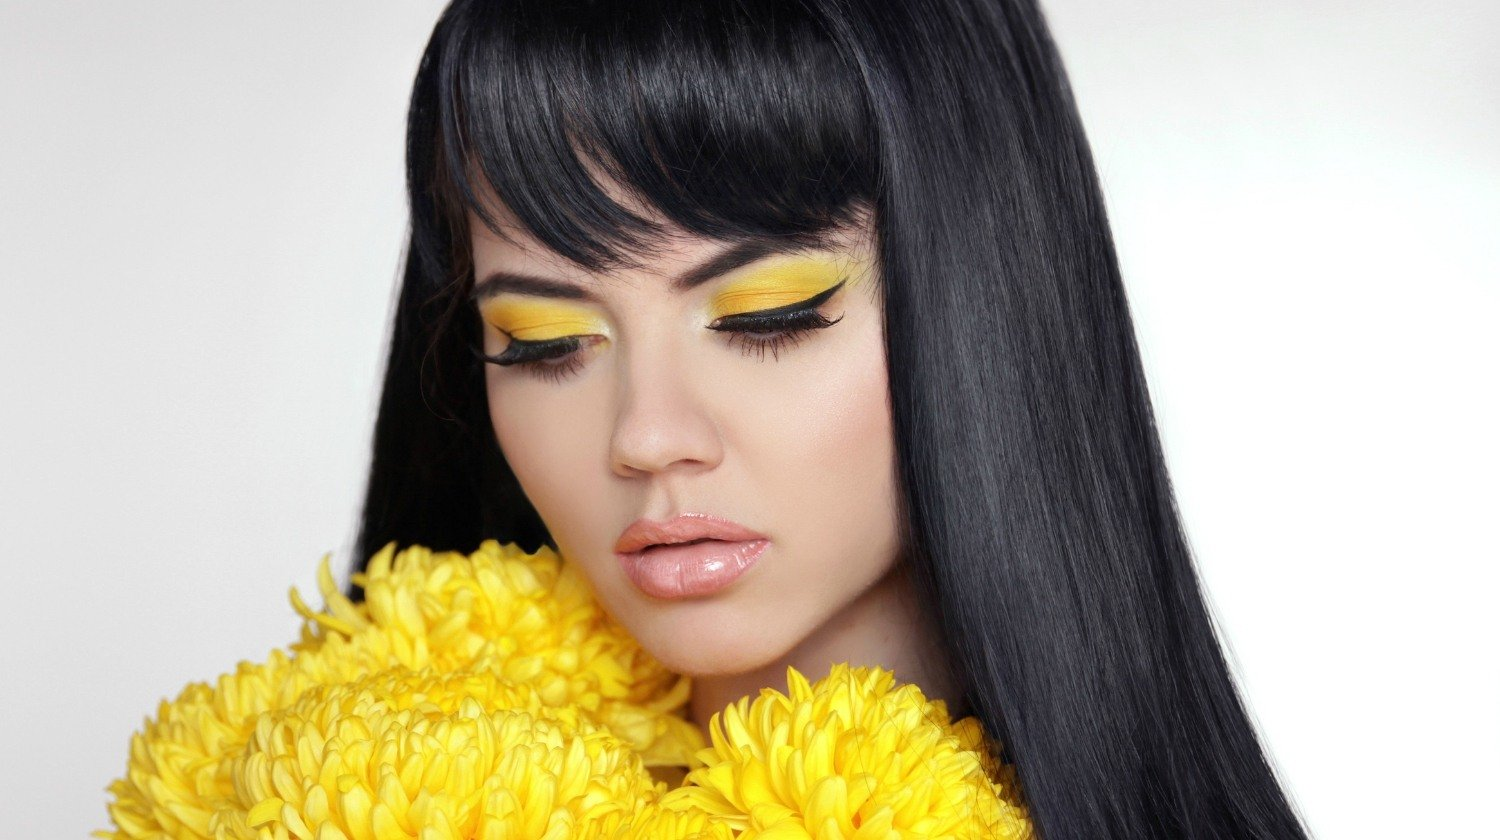 feature | Trend Alert-Bright Yellow Eye-shadow is Hot Right Now